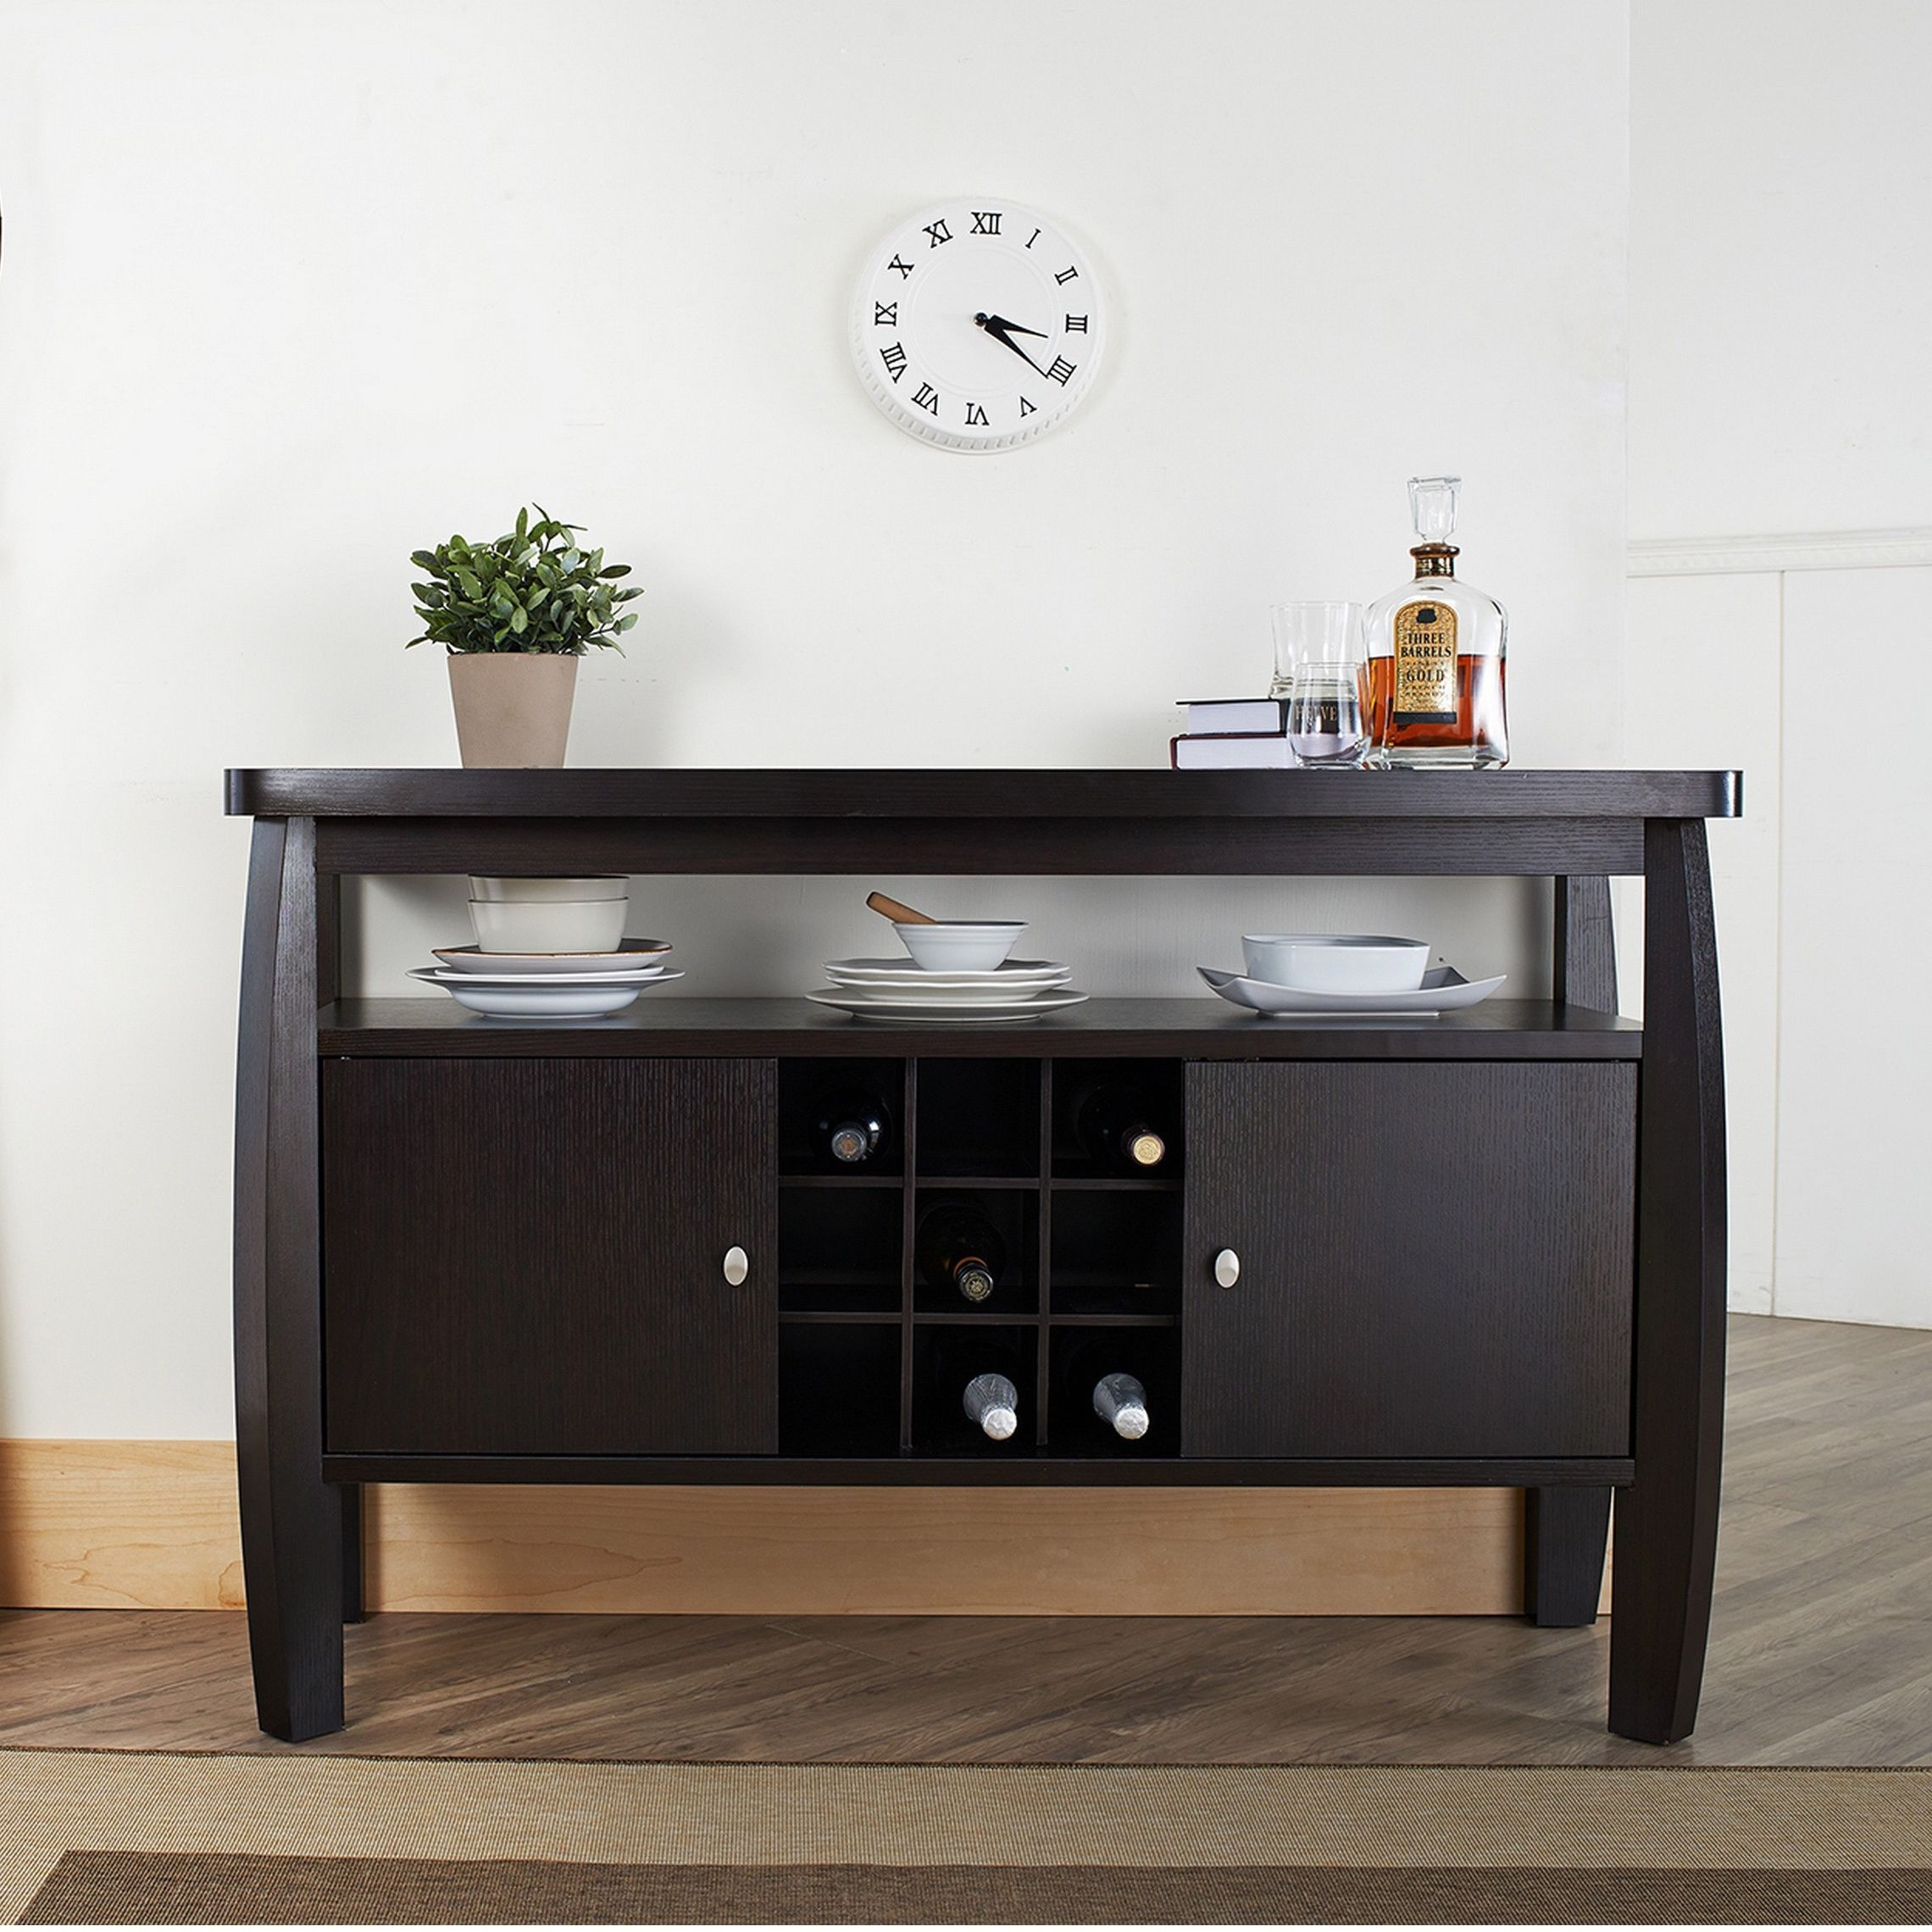 Add An Elegant Touch To Any Room With This Durable Espresso Buffet Table The